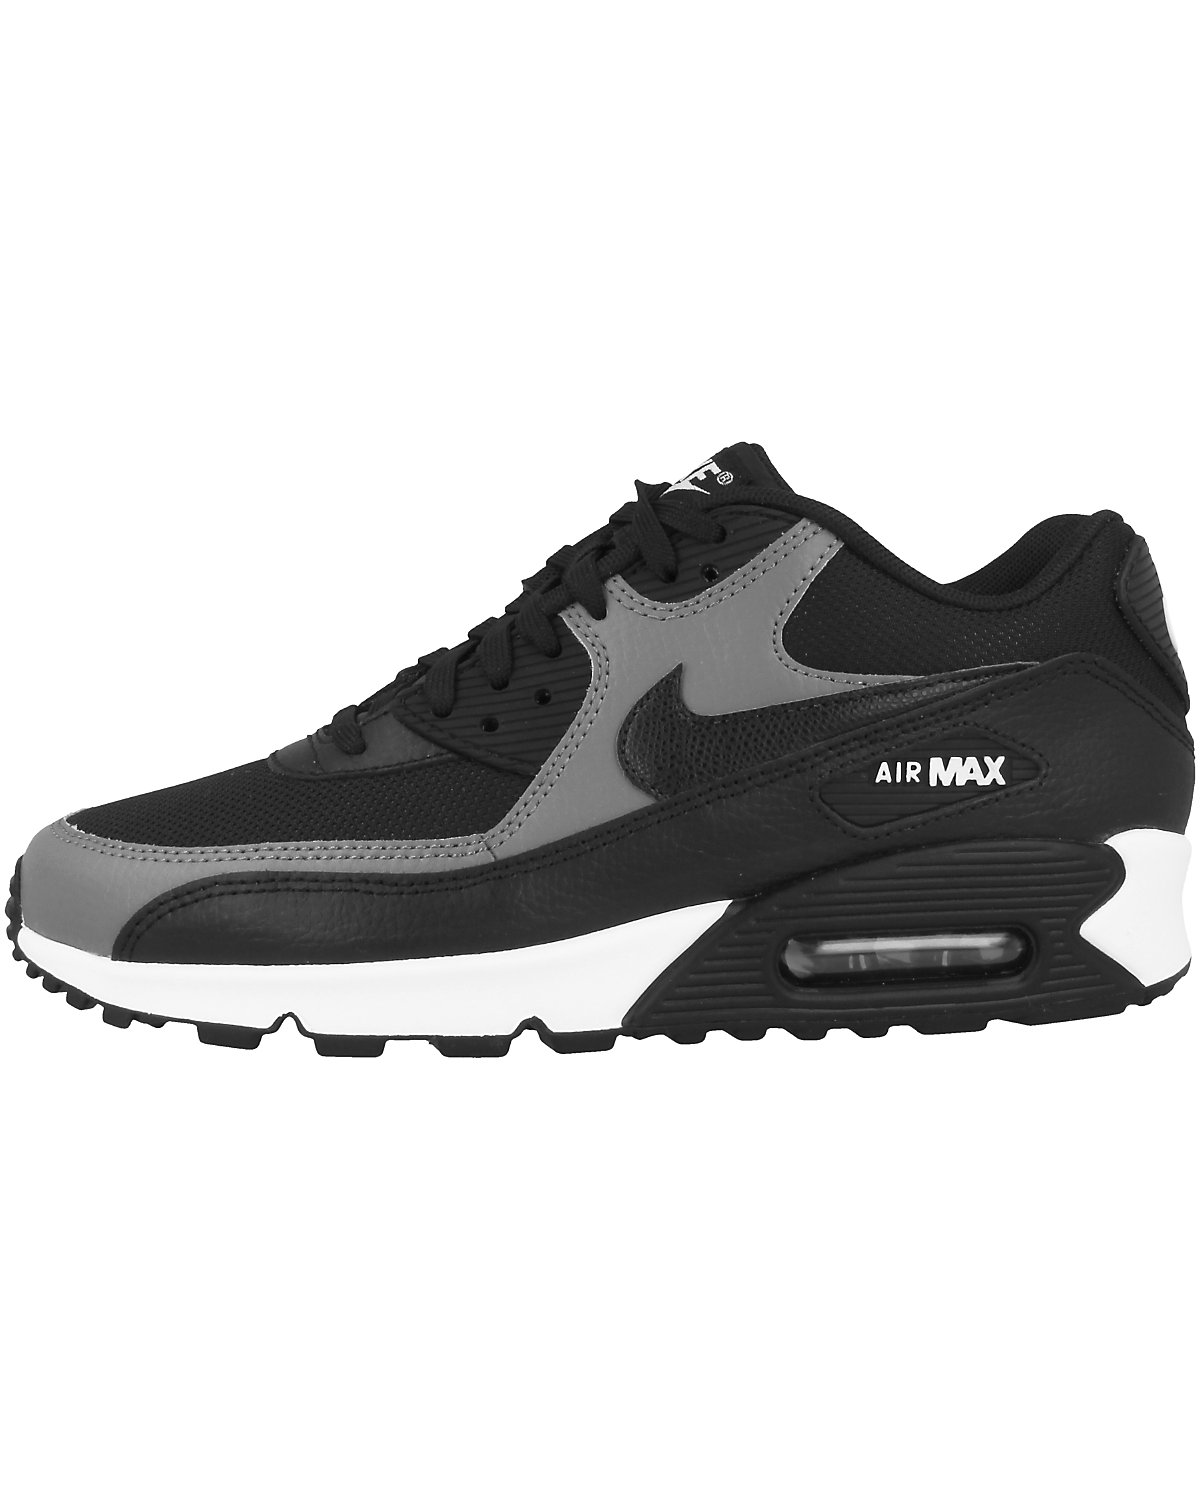 Nike Sportswear, Sneakers Max Low Air Max Sneakers 90, schwarz 75fefa